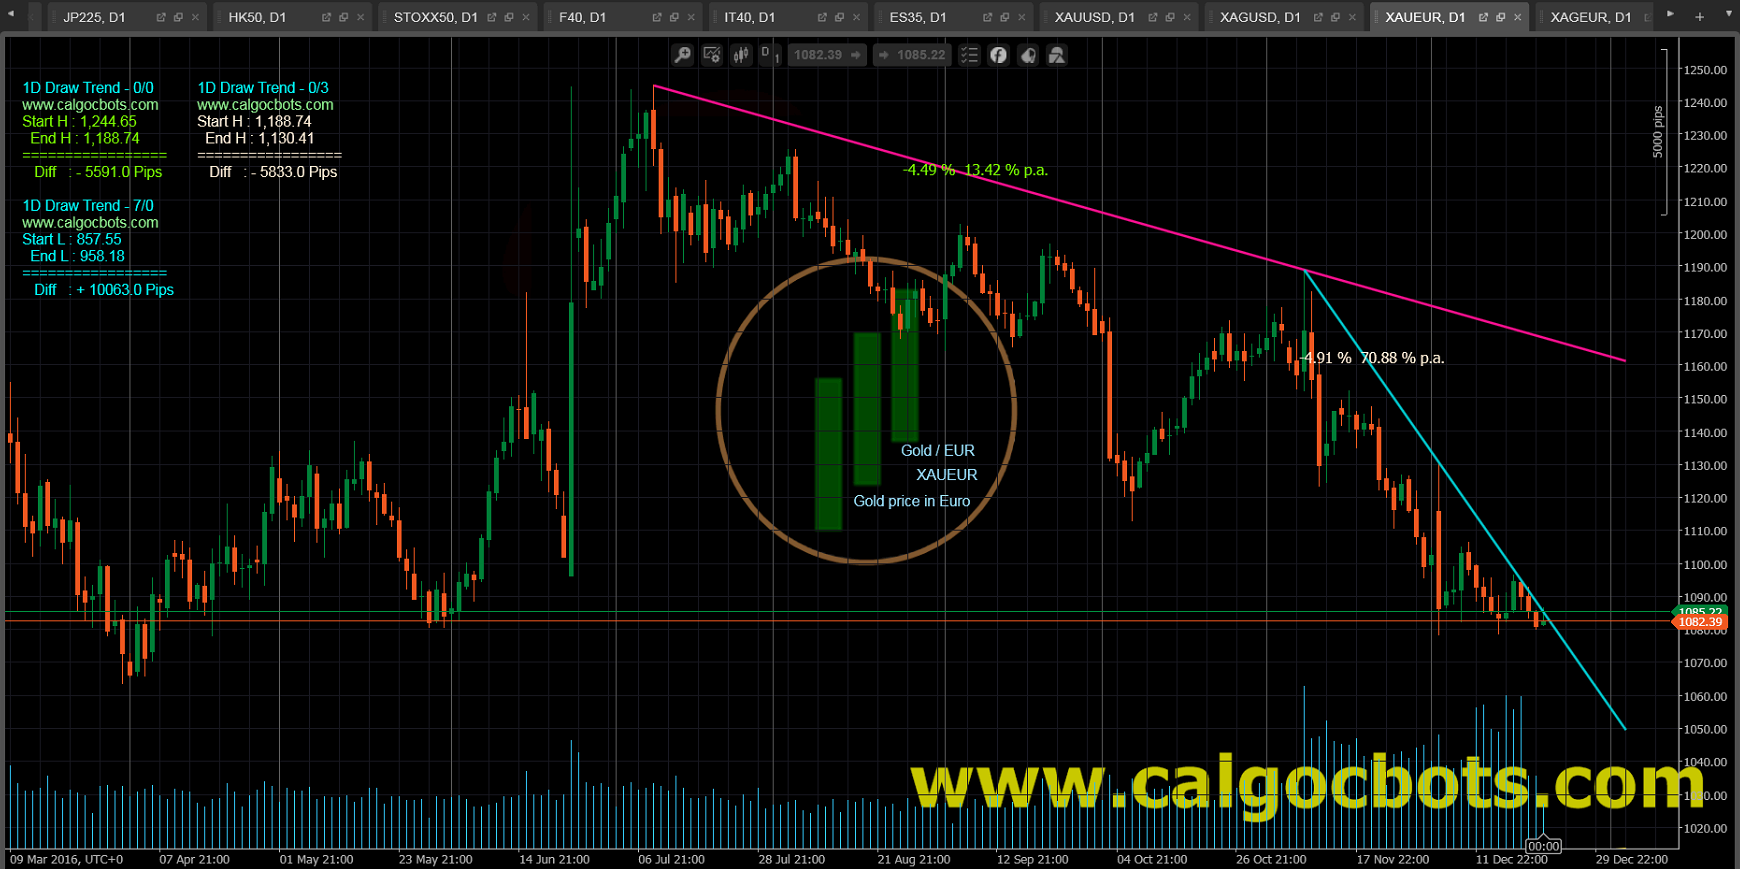 1D Draw Trend - cAlgo and cTrader Indicator - Gold EUR Spot - XAUEUR Daily Chart - 003